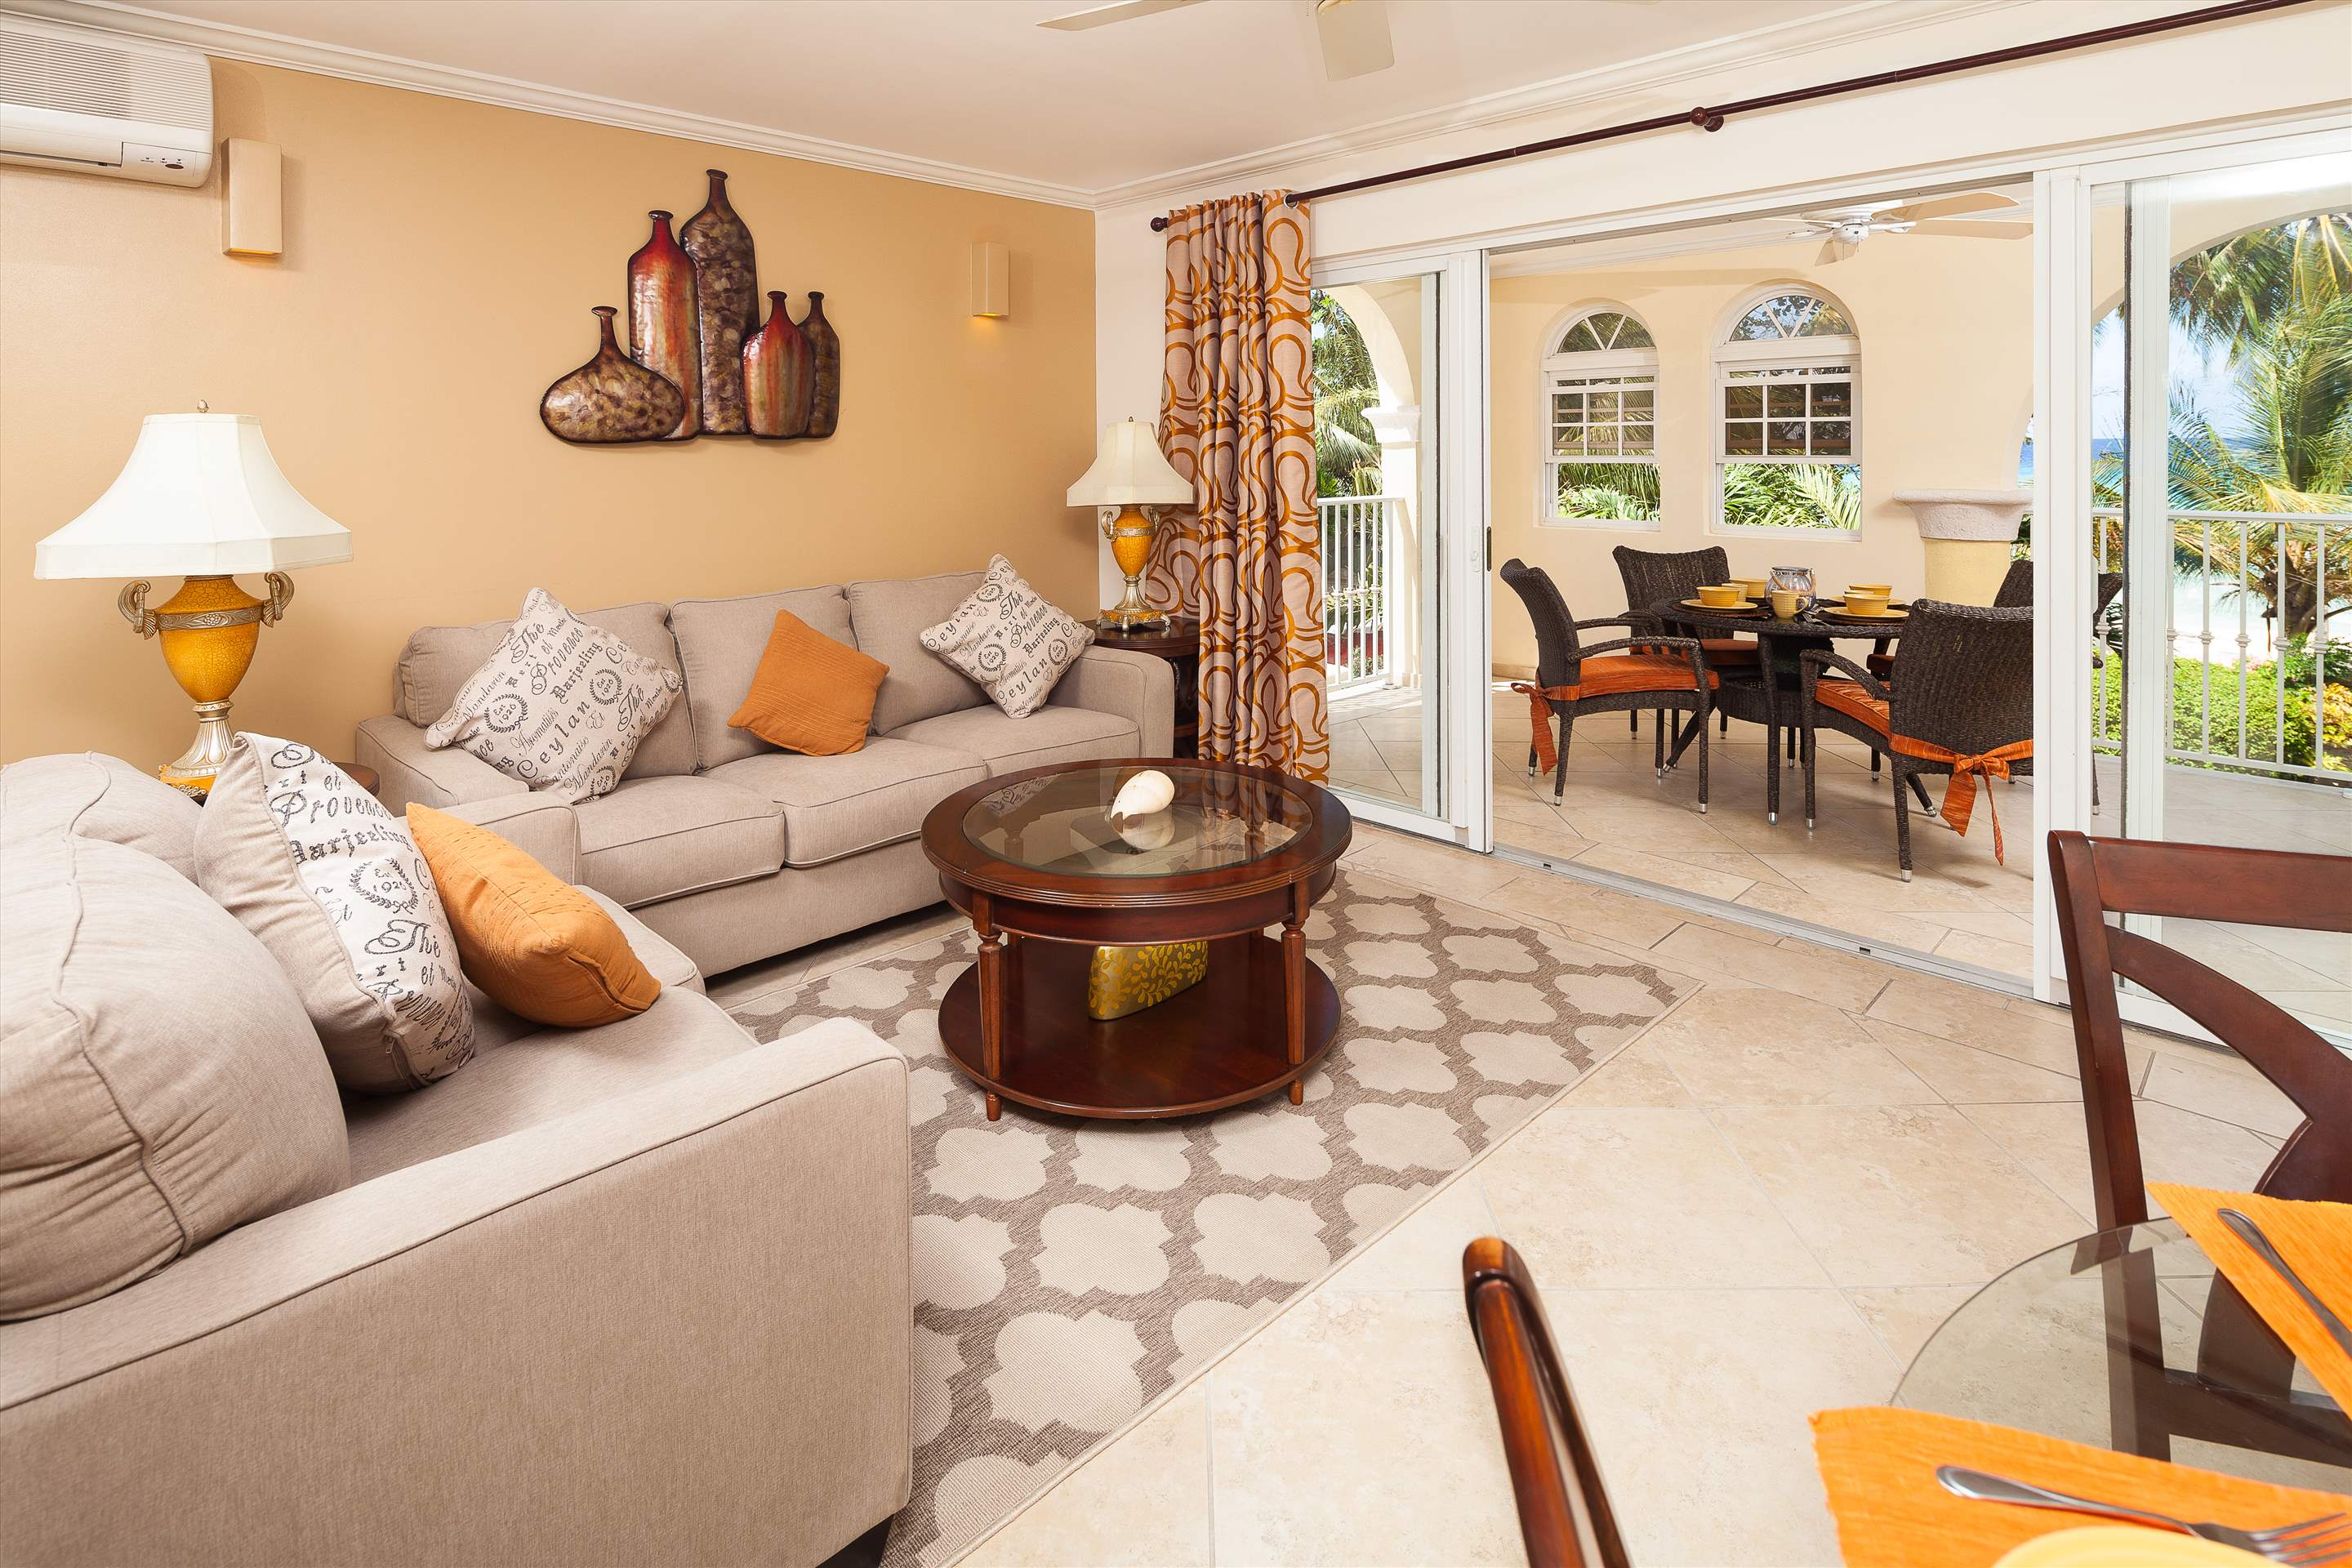 Sapphire Beach 118, 2 bedroom , 2 bedroom apartment in St. Lawrence Gap & South Coast, Barbados Photo #2